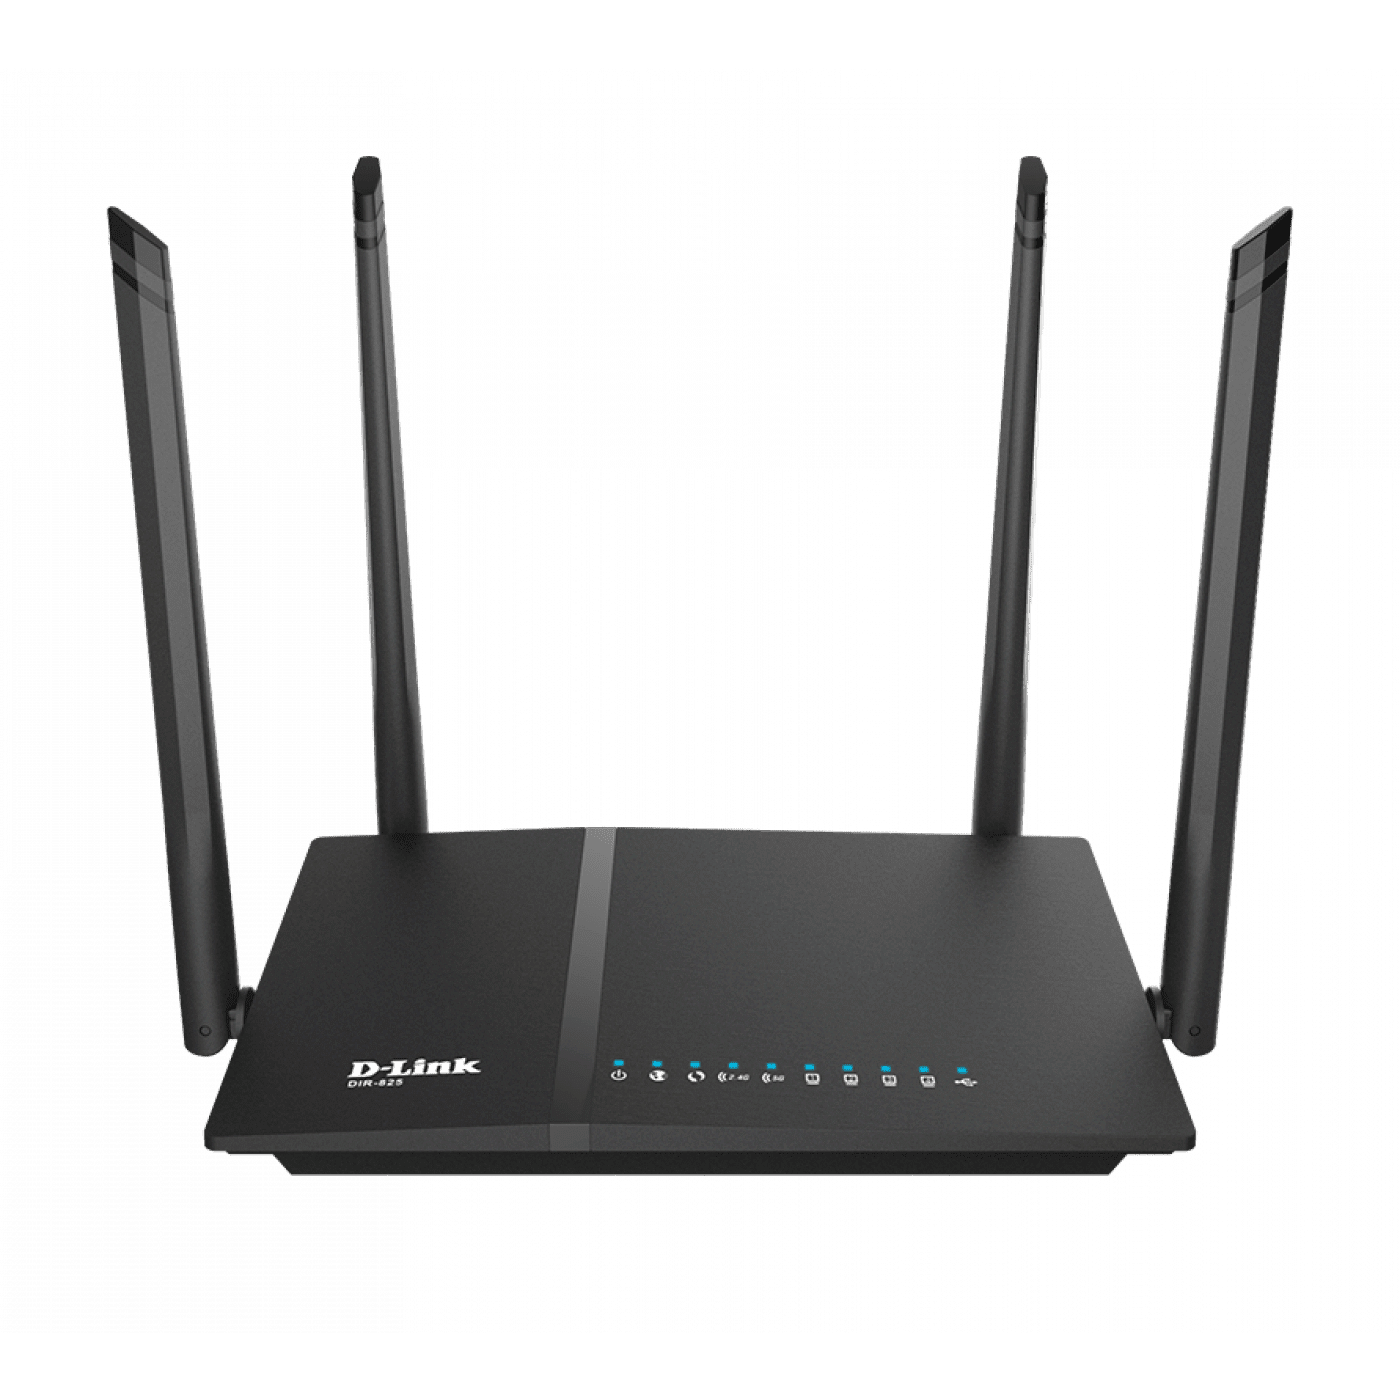 Telkom LTE Sim + Router Deals